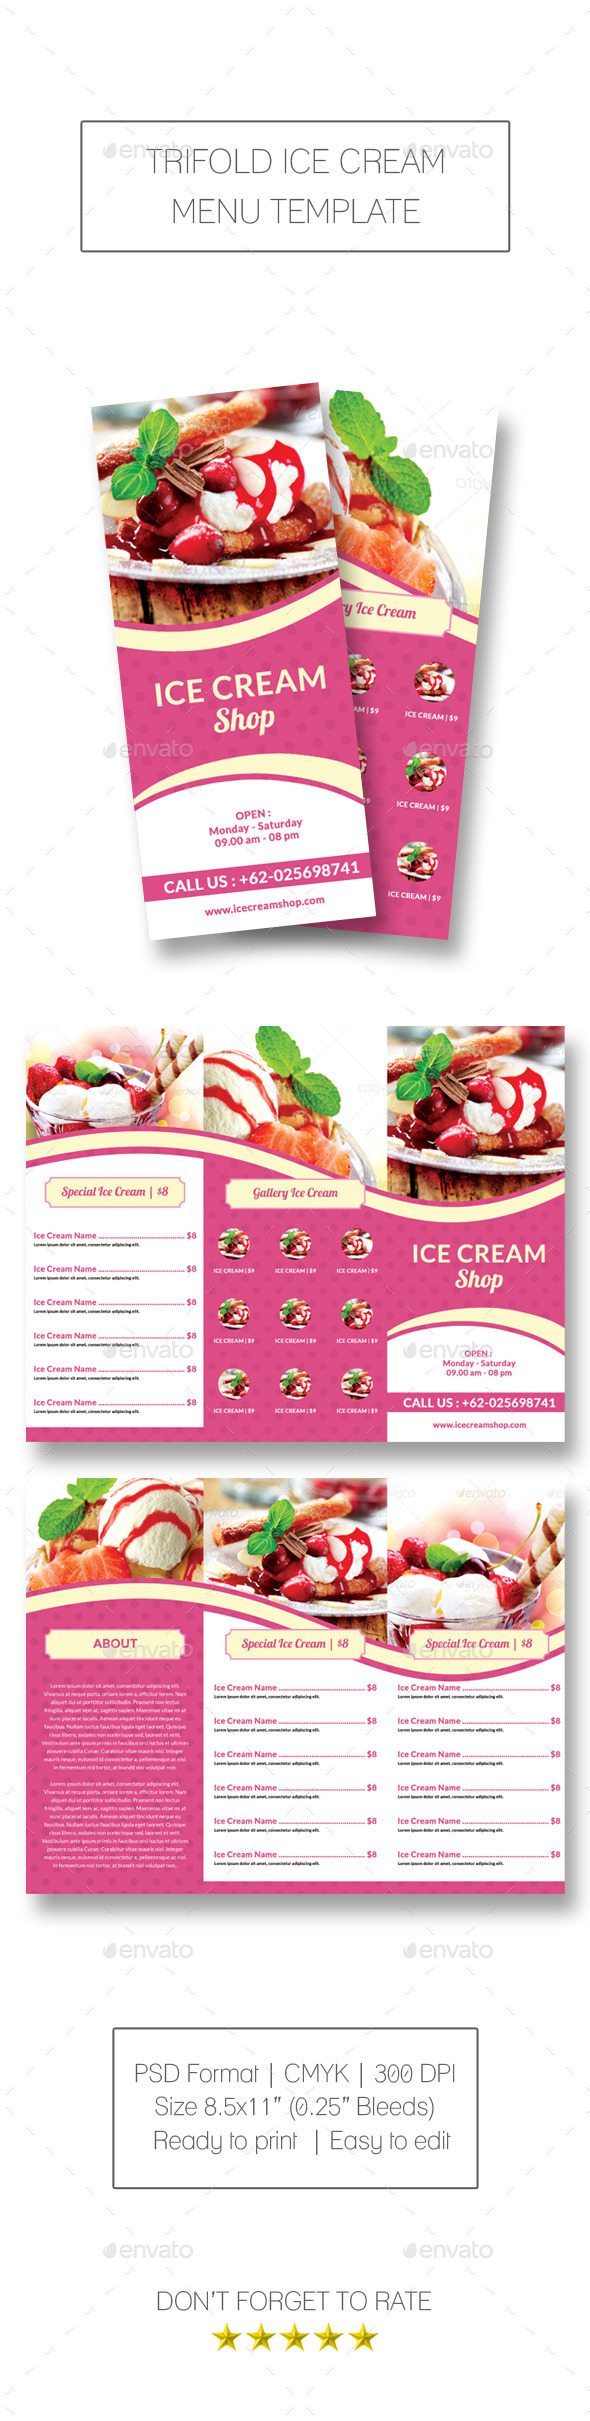 GraphicRiver Trifold Ice Cream Menu Template 10870043